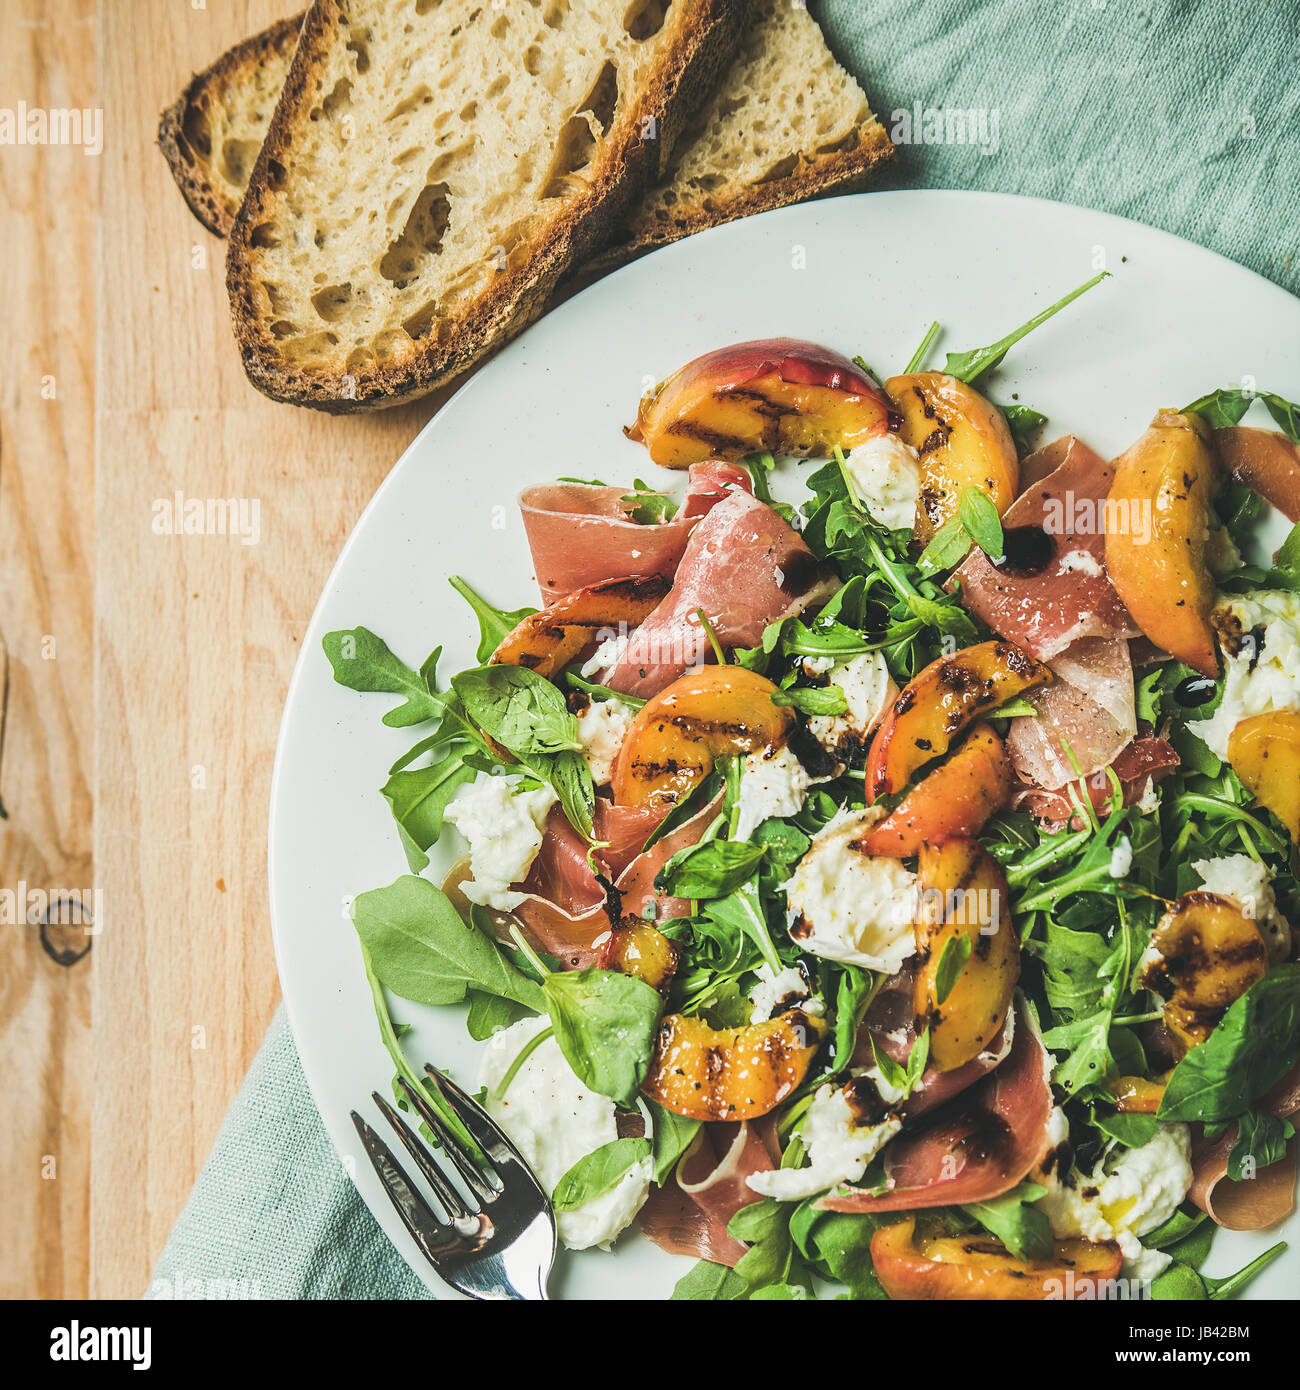 Arugula, prosciutto, mozzarella and grilled peach salad, top view - Stock Image